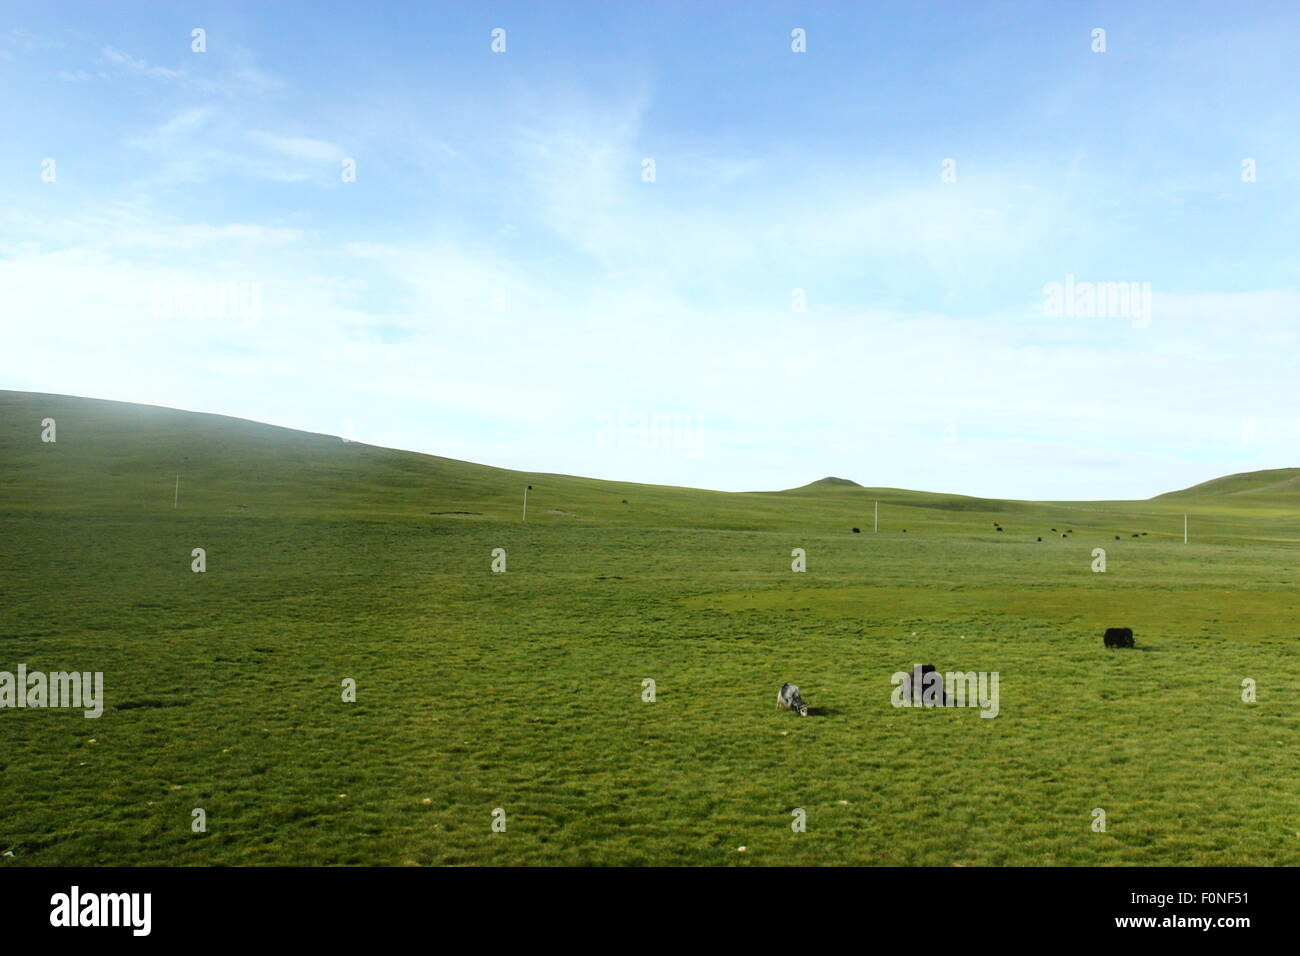 Chn. 13th Aug, 2014. CHINA - September 18 2014: (EDITORIAL USE ONLY. CHINA OUT)The Qinghai-Tibet Railway - Stock Image